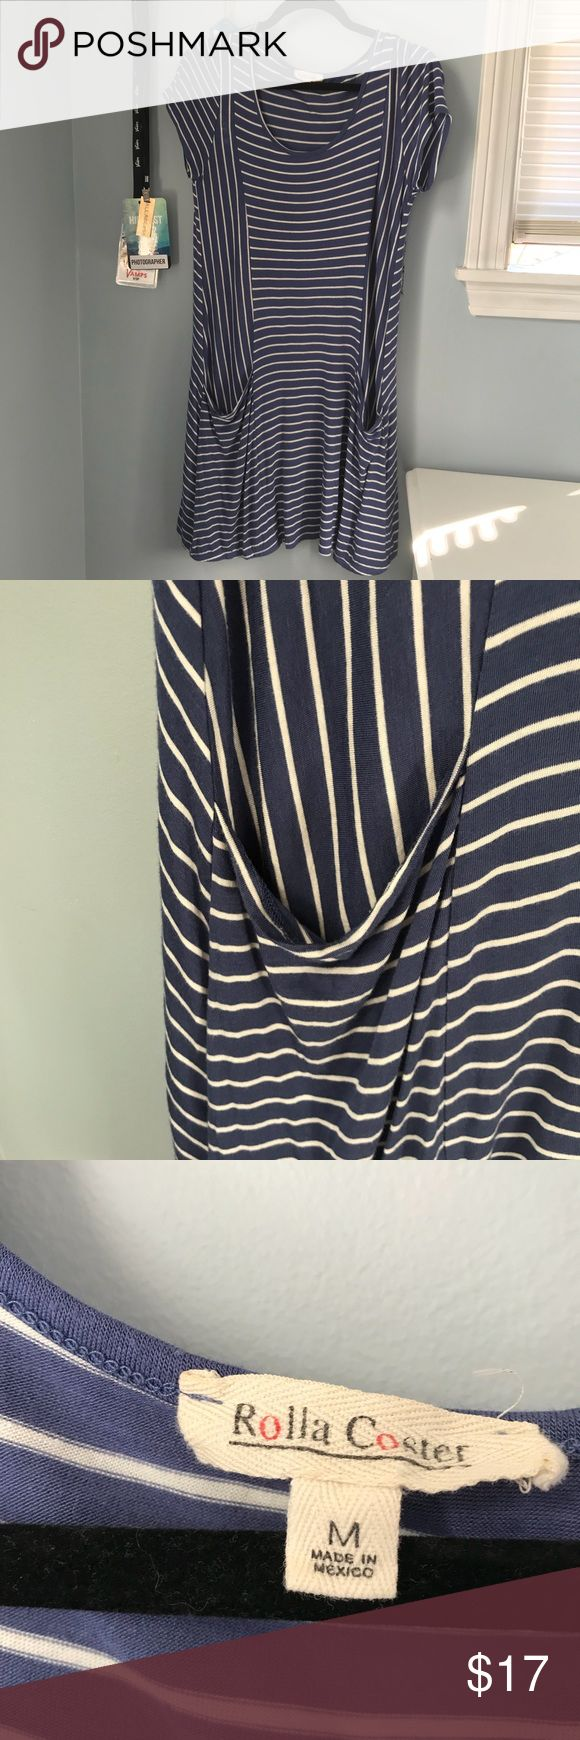 "Striped t shirt dress with pockets Blue and white T-shirt dress with horizontal and vertical stripes. Has pockets. Hits a little about the knee for me and I'm 5'4"". Only worn twice. Very soft. Rolla Coster Dresses"